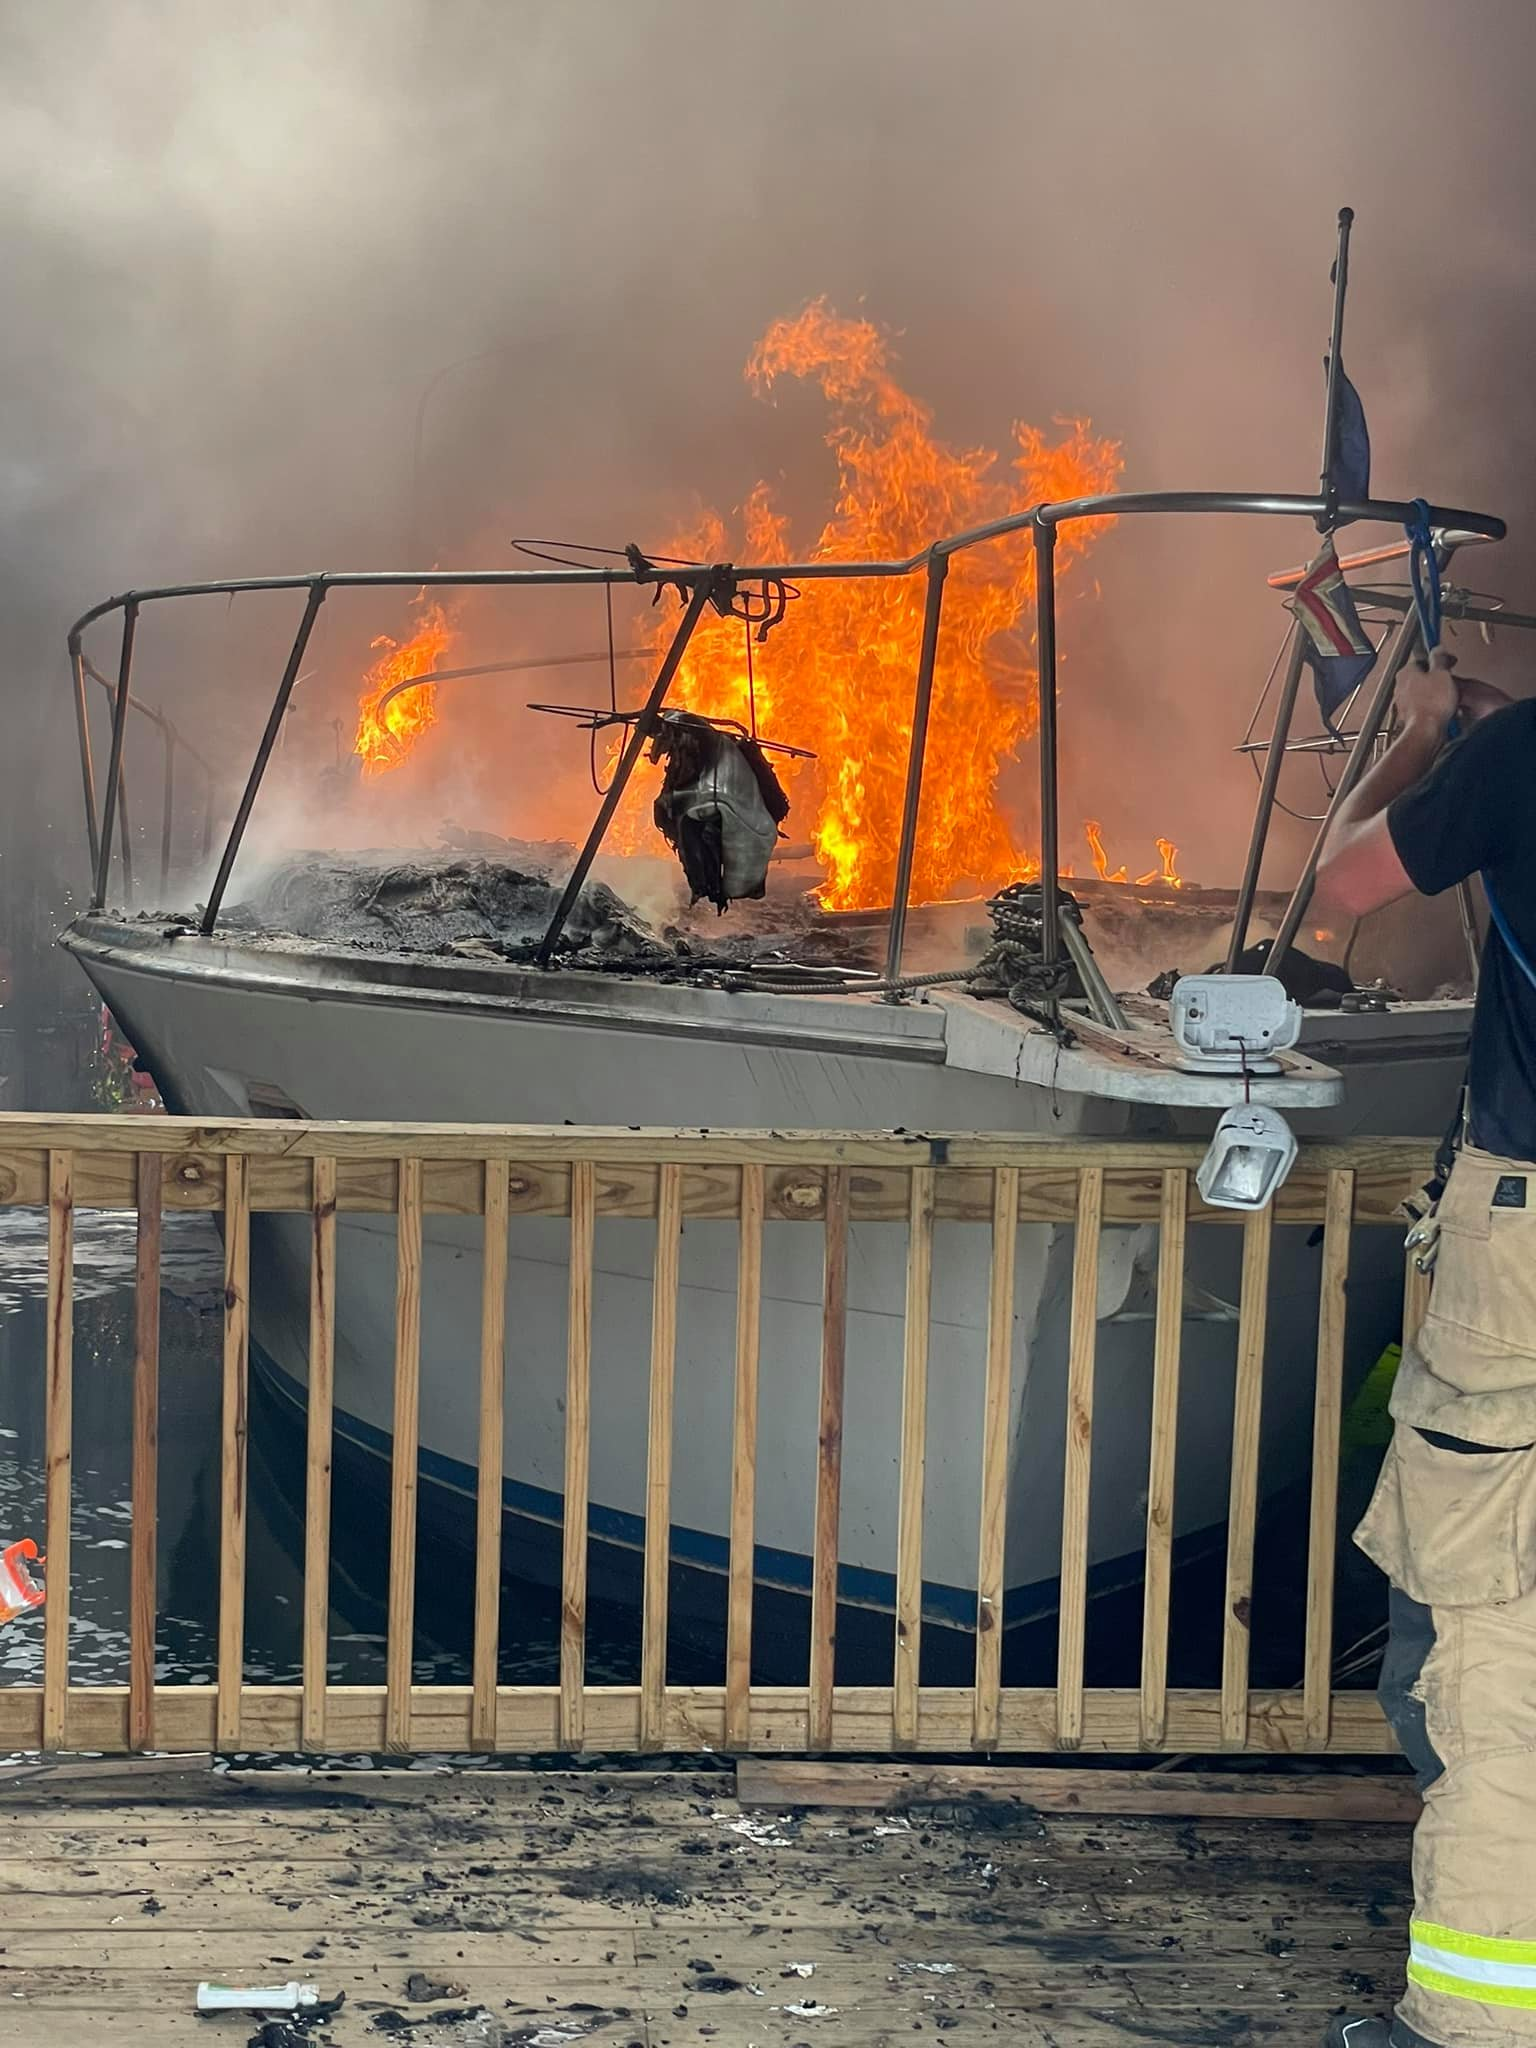 Boat fire at Chattanooga Yacht Club, Tennessee